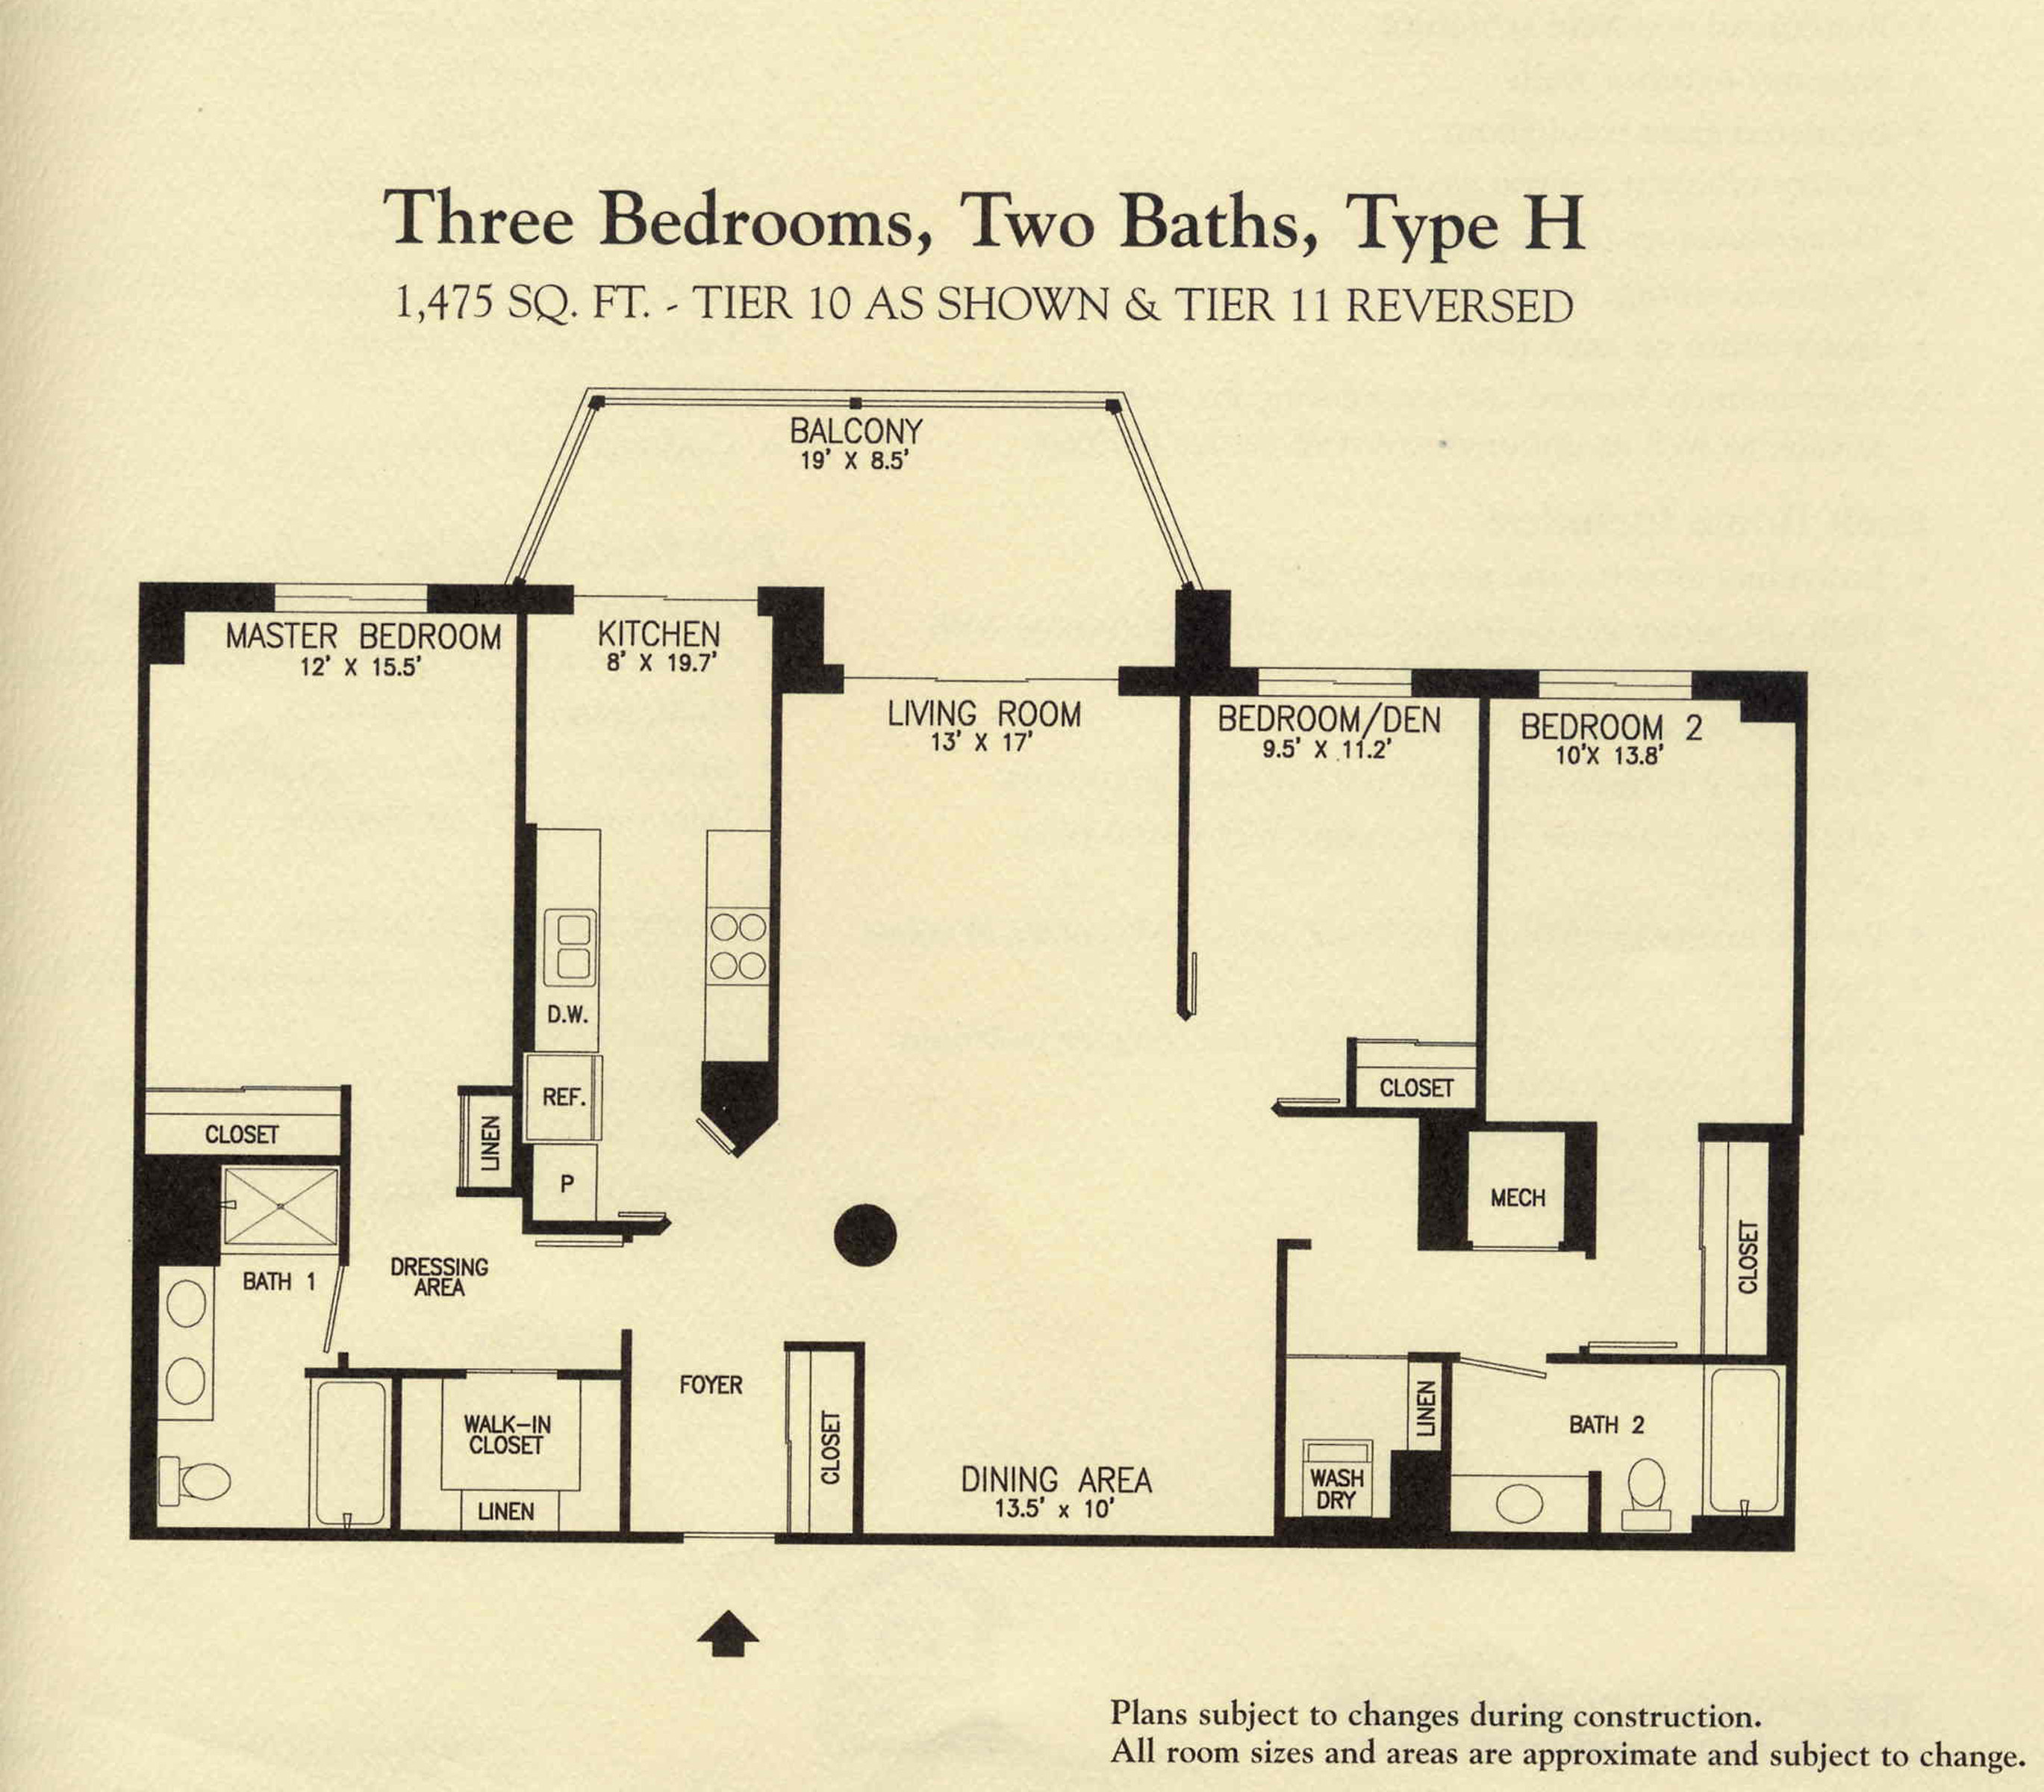 19385 Cypress Ridge Ter #410_Lansdowne Woods_Floorplan